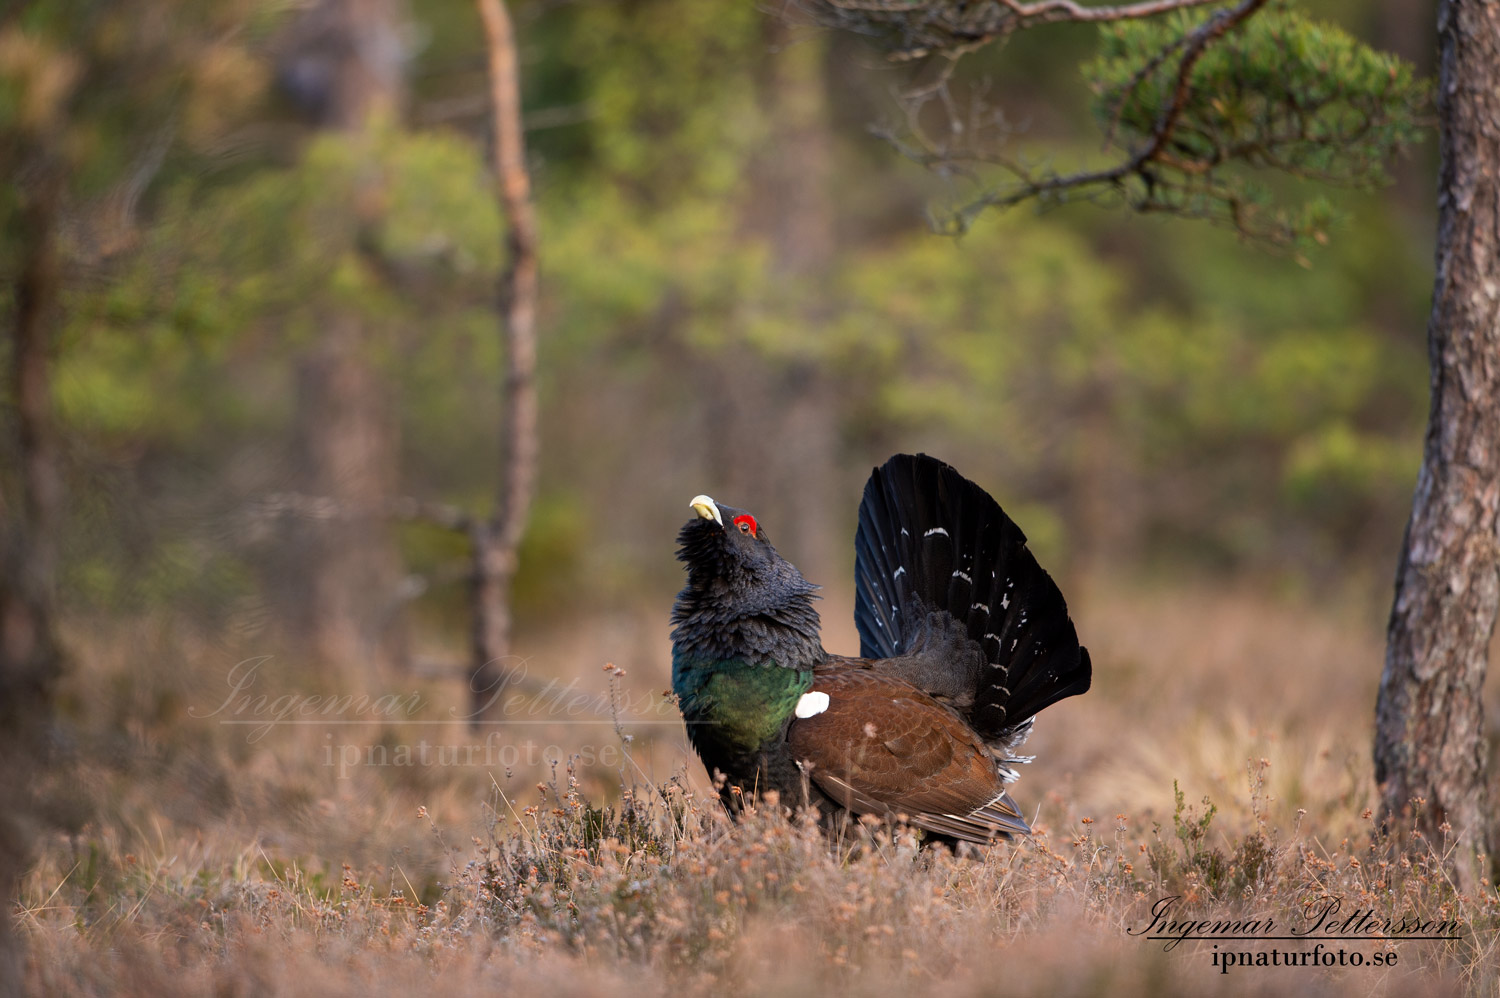 tjader_ipnaturfoto_capercaillie_se_forest_fo620